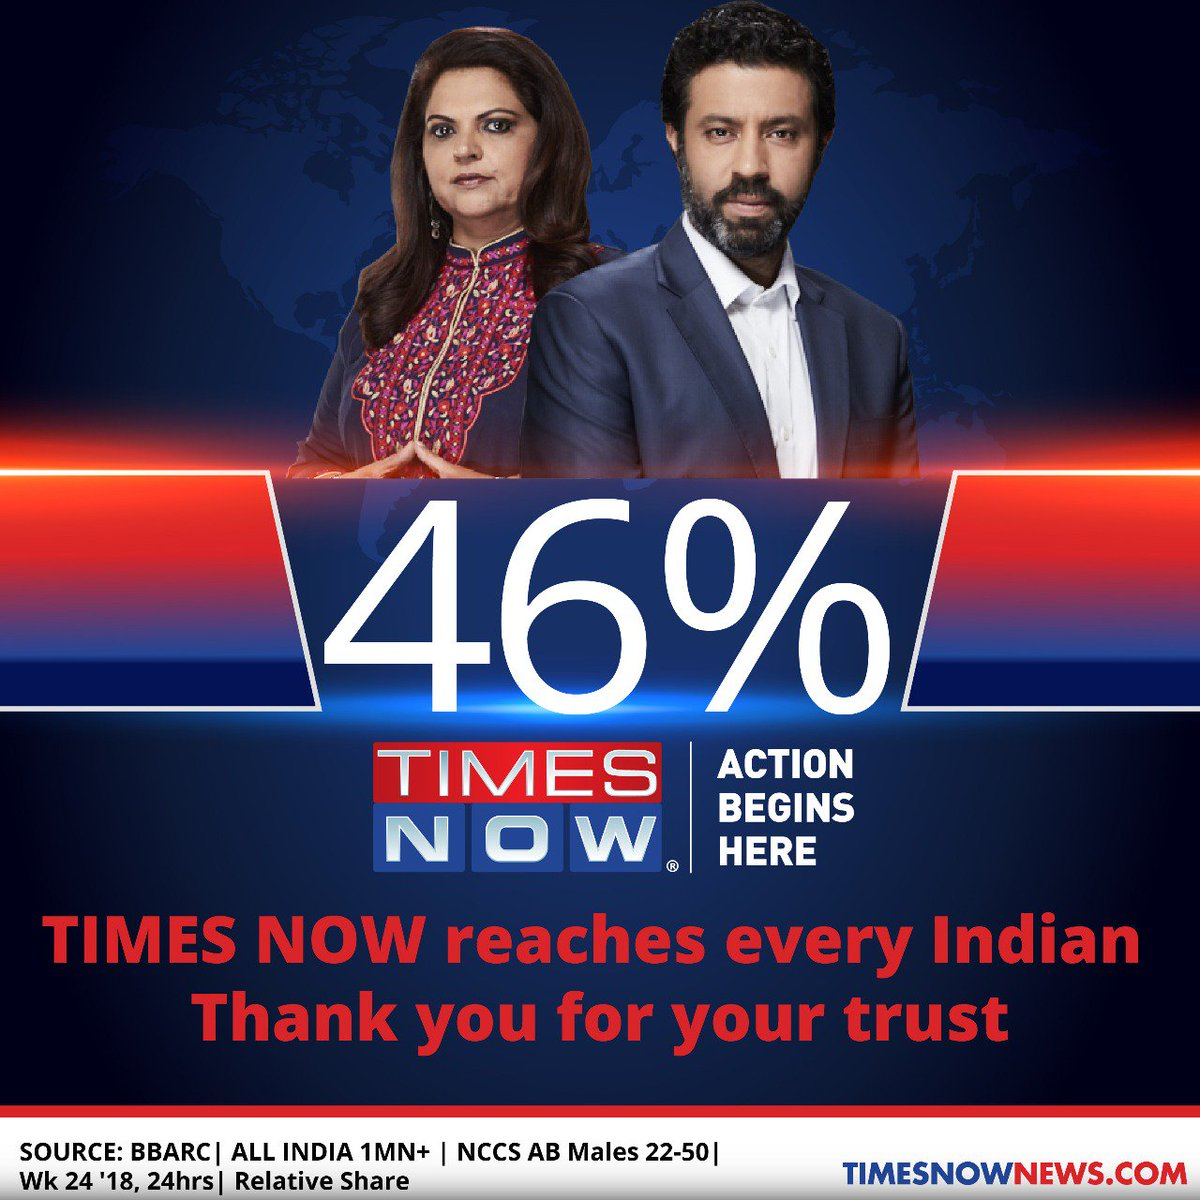 TIMES NOW reaches every Indian. Historic viewership run continues, Thank you for your trust!